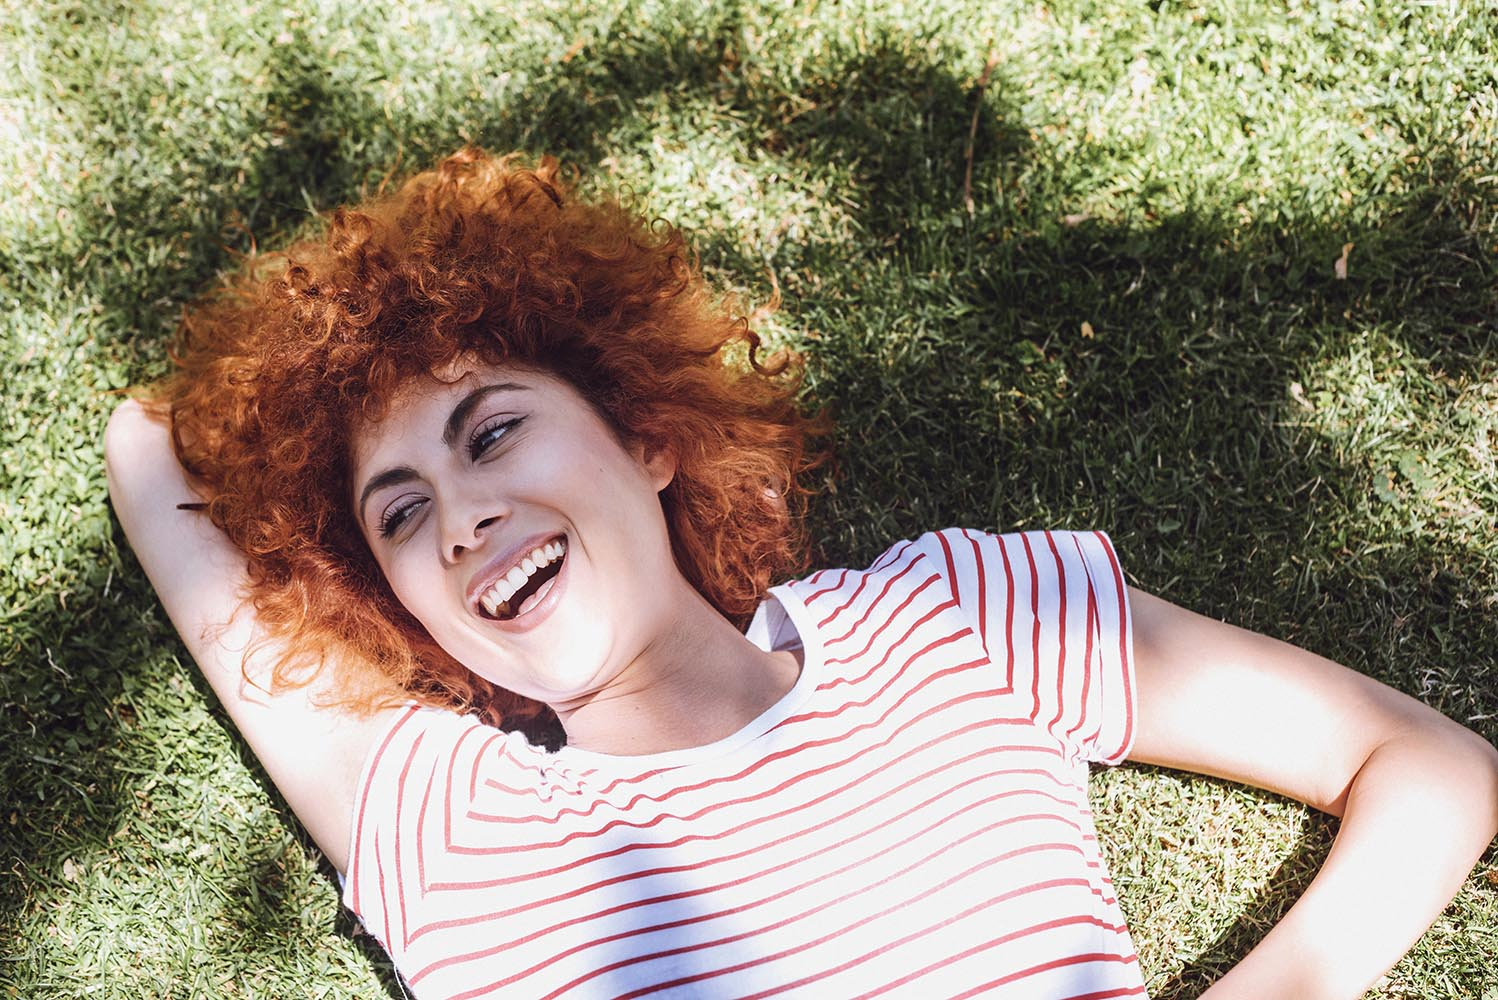 Beautiful young woman lying on grass and laughing